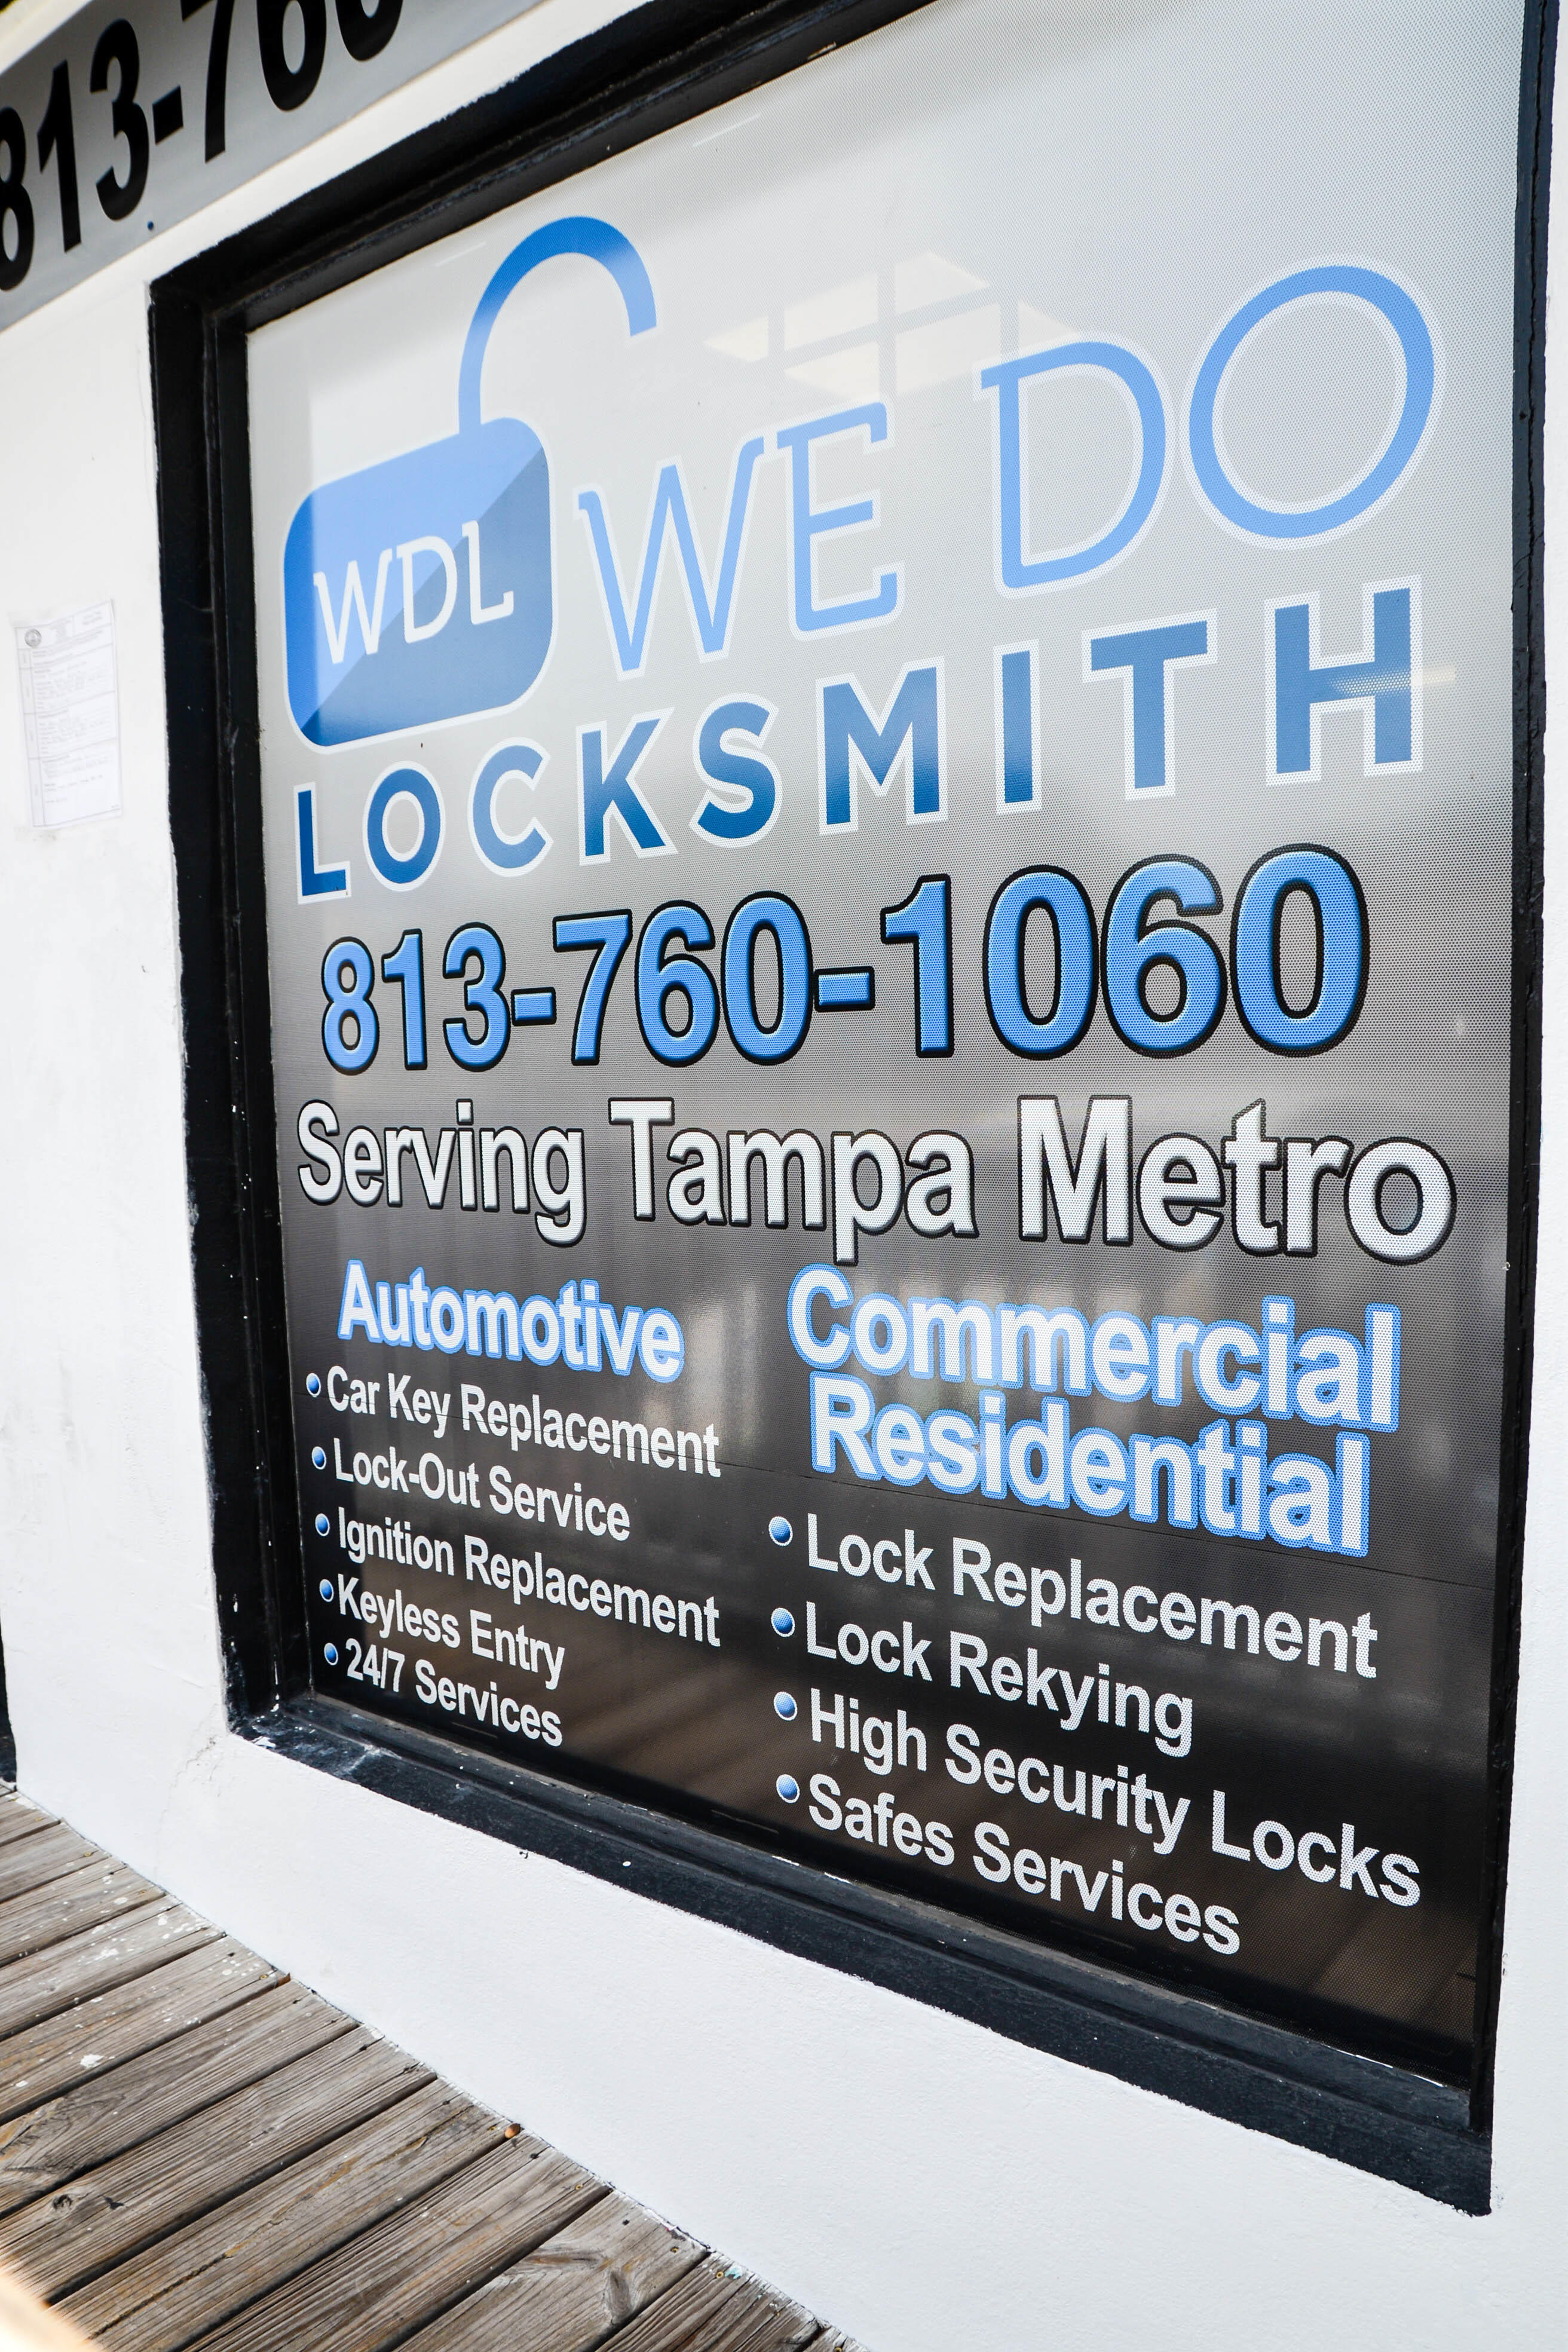 Commercial Locksmith Tampa We do locksmith 813-760-1060 https://wedo-locksmith.com/